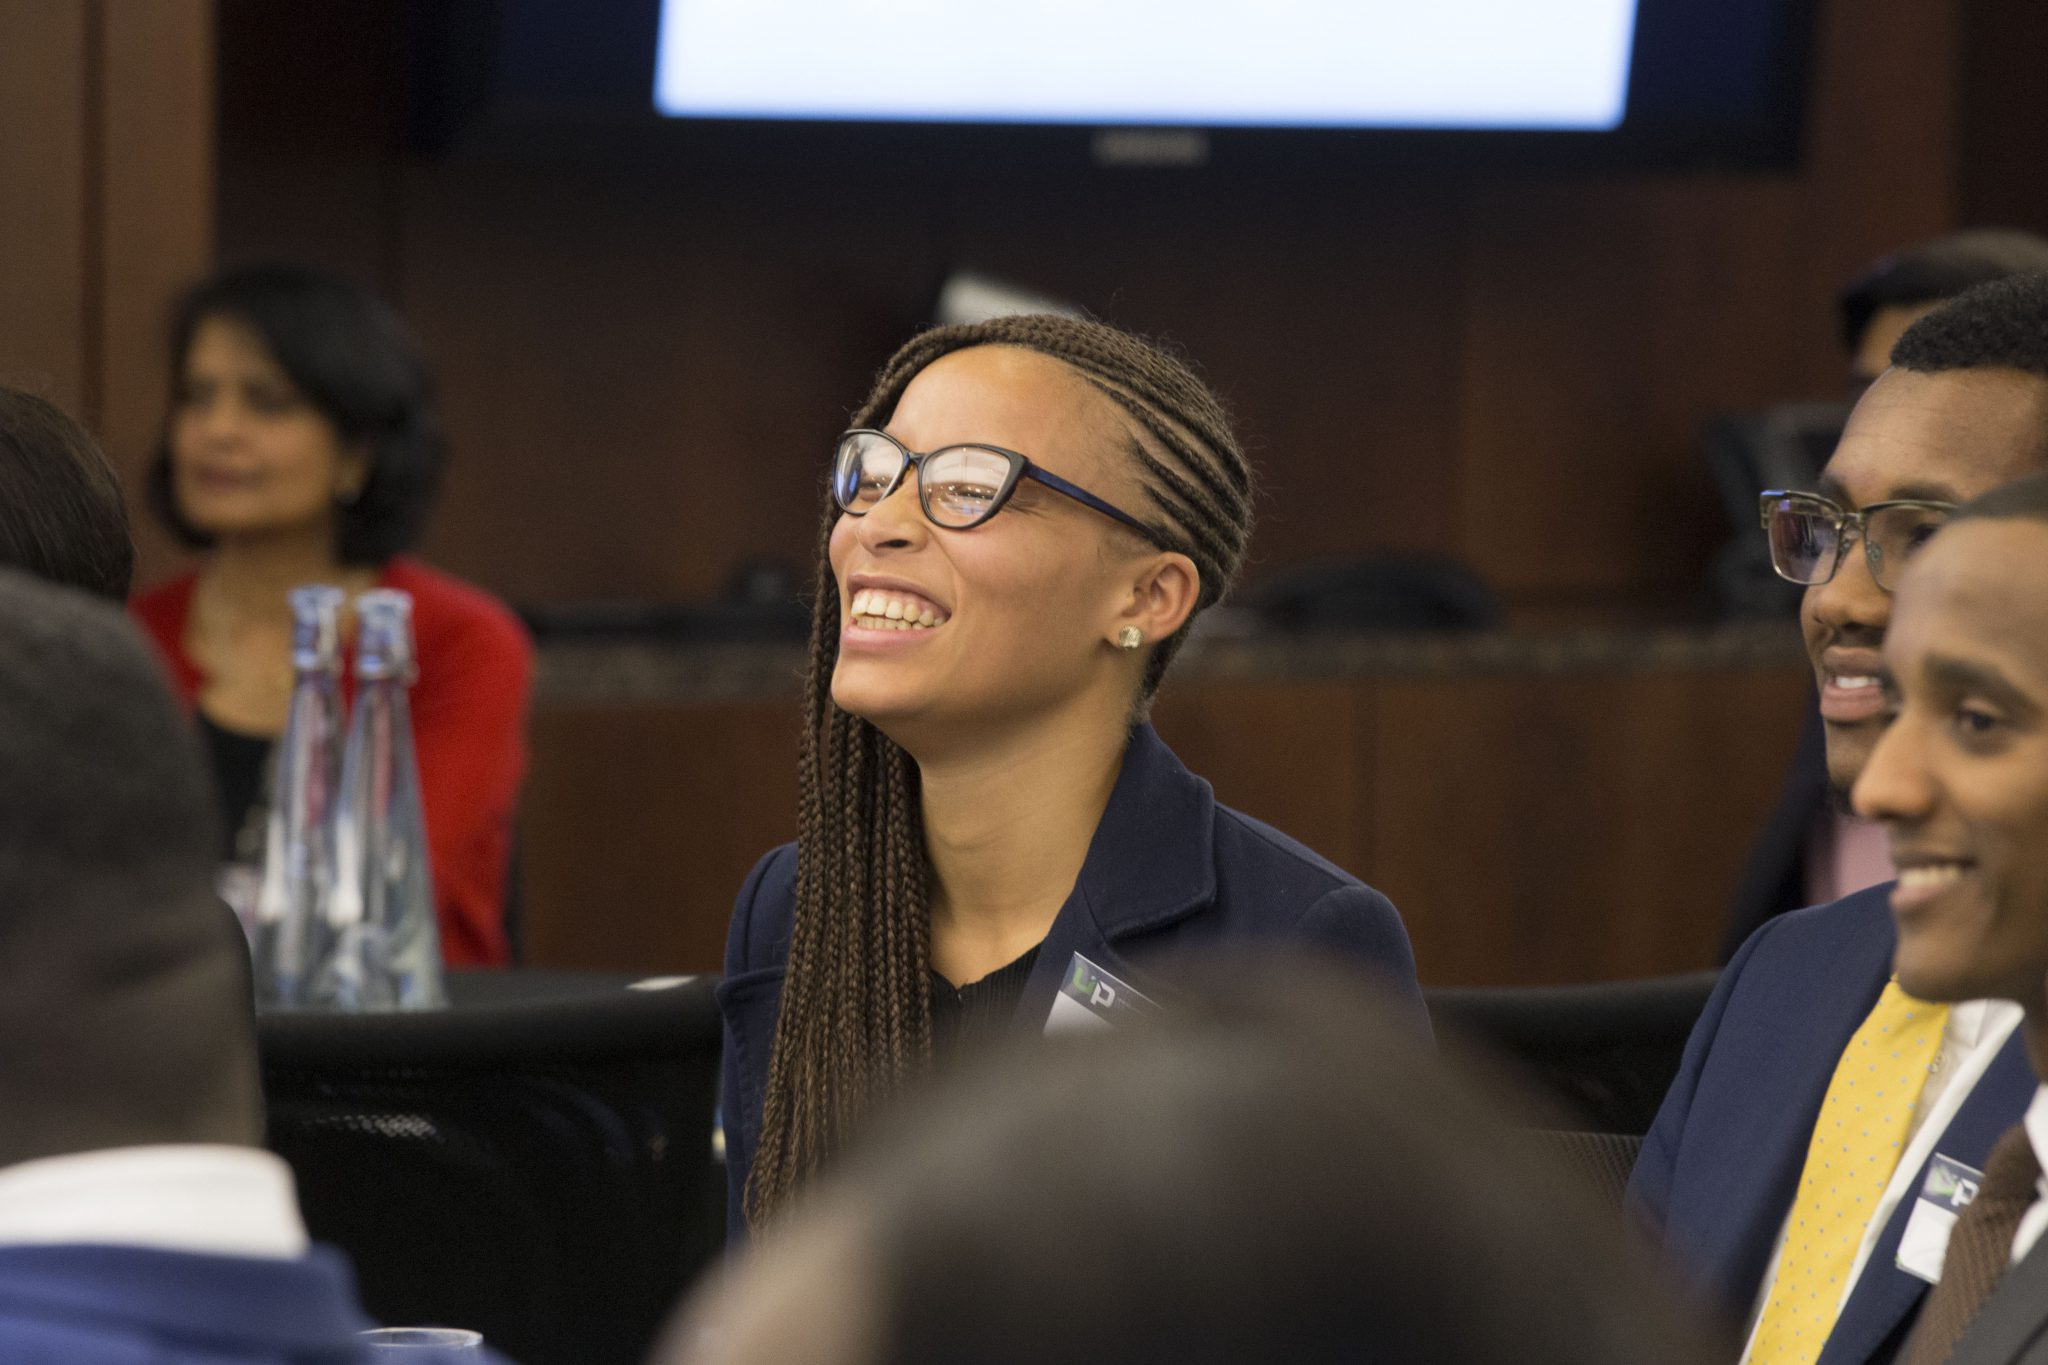 Diverse student sitting and smiling with their eyes shut during an Uncovering Prospects event